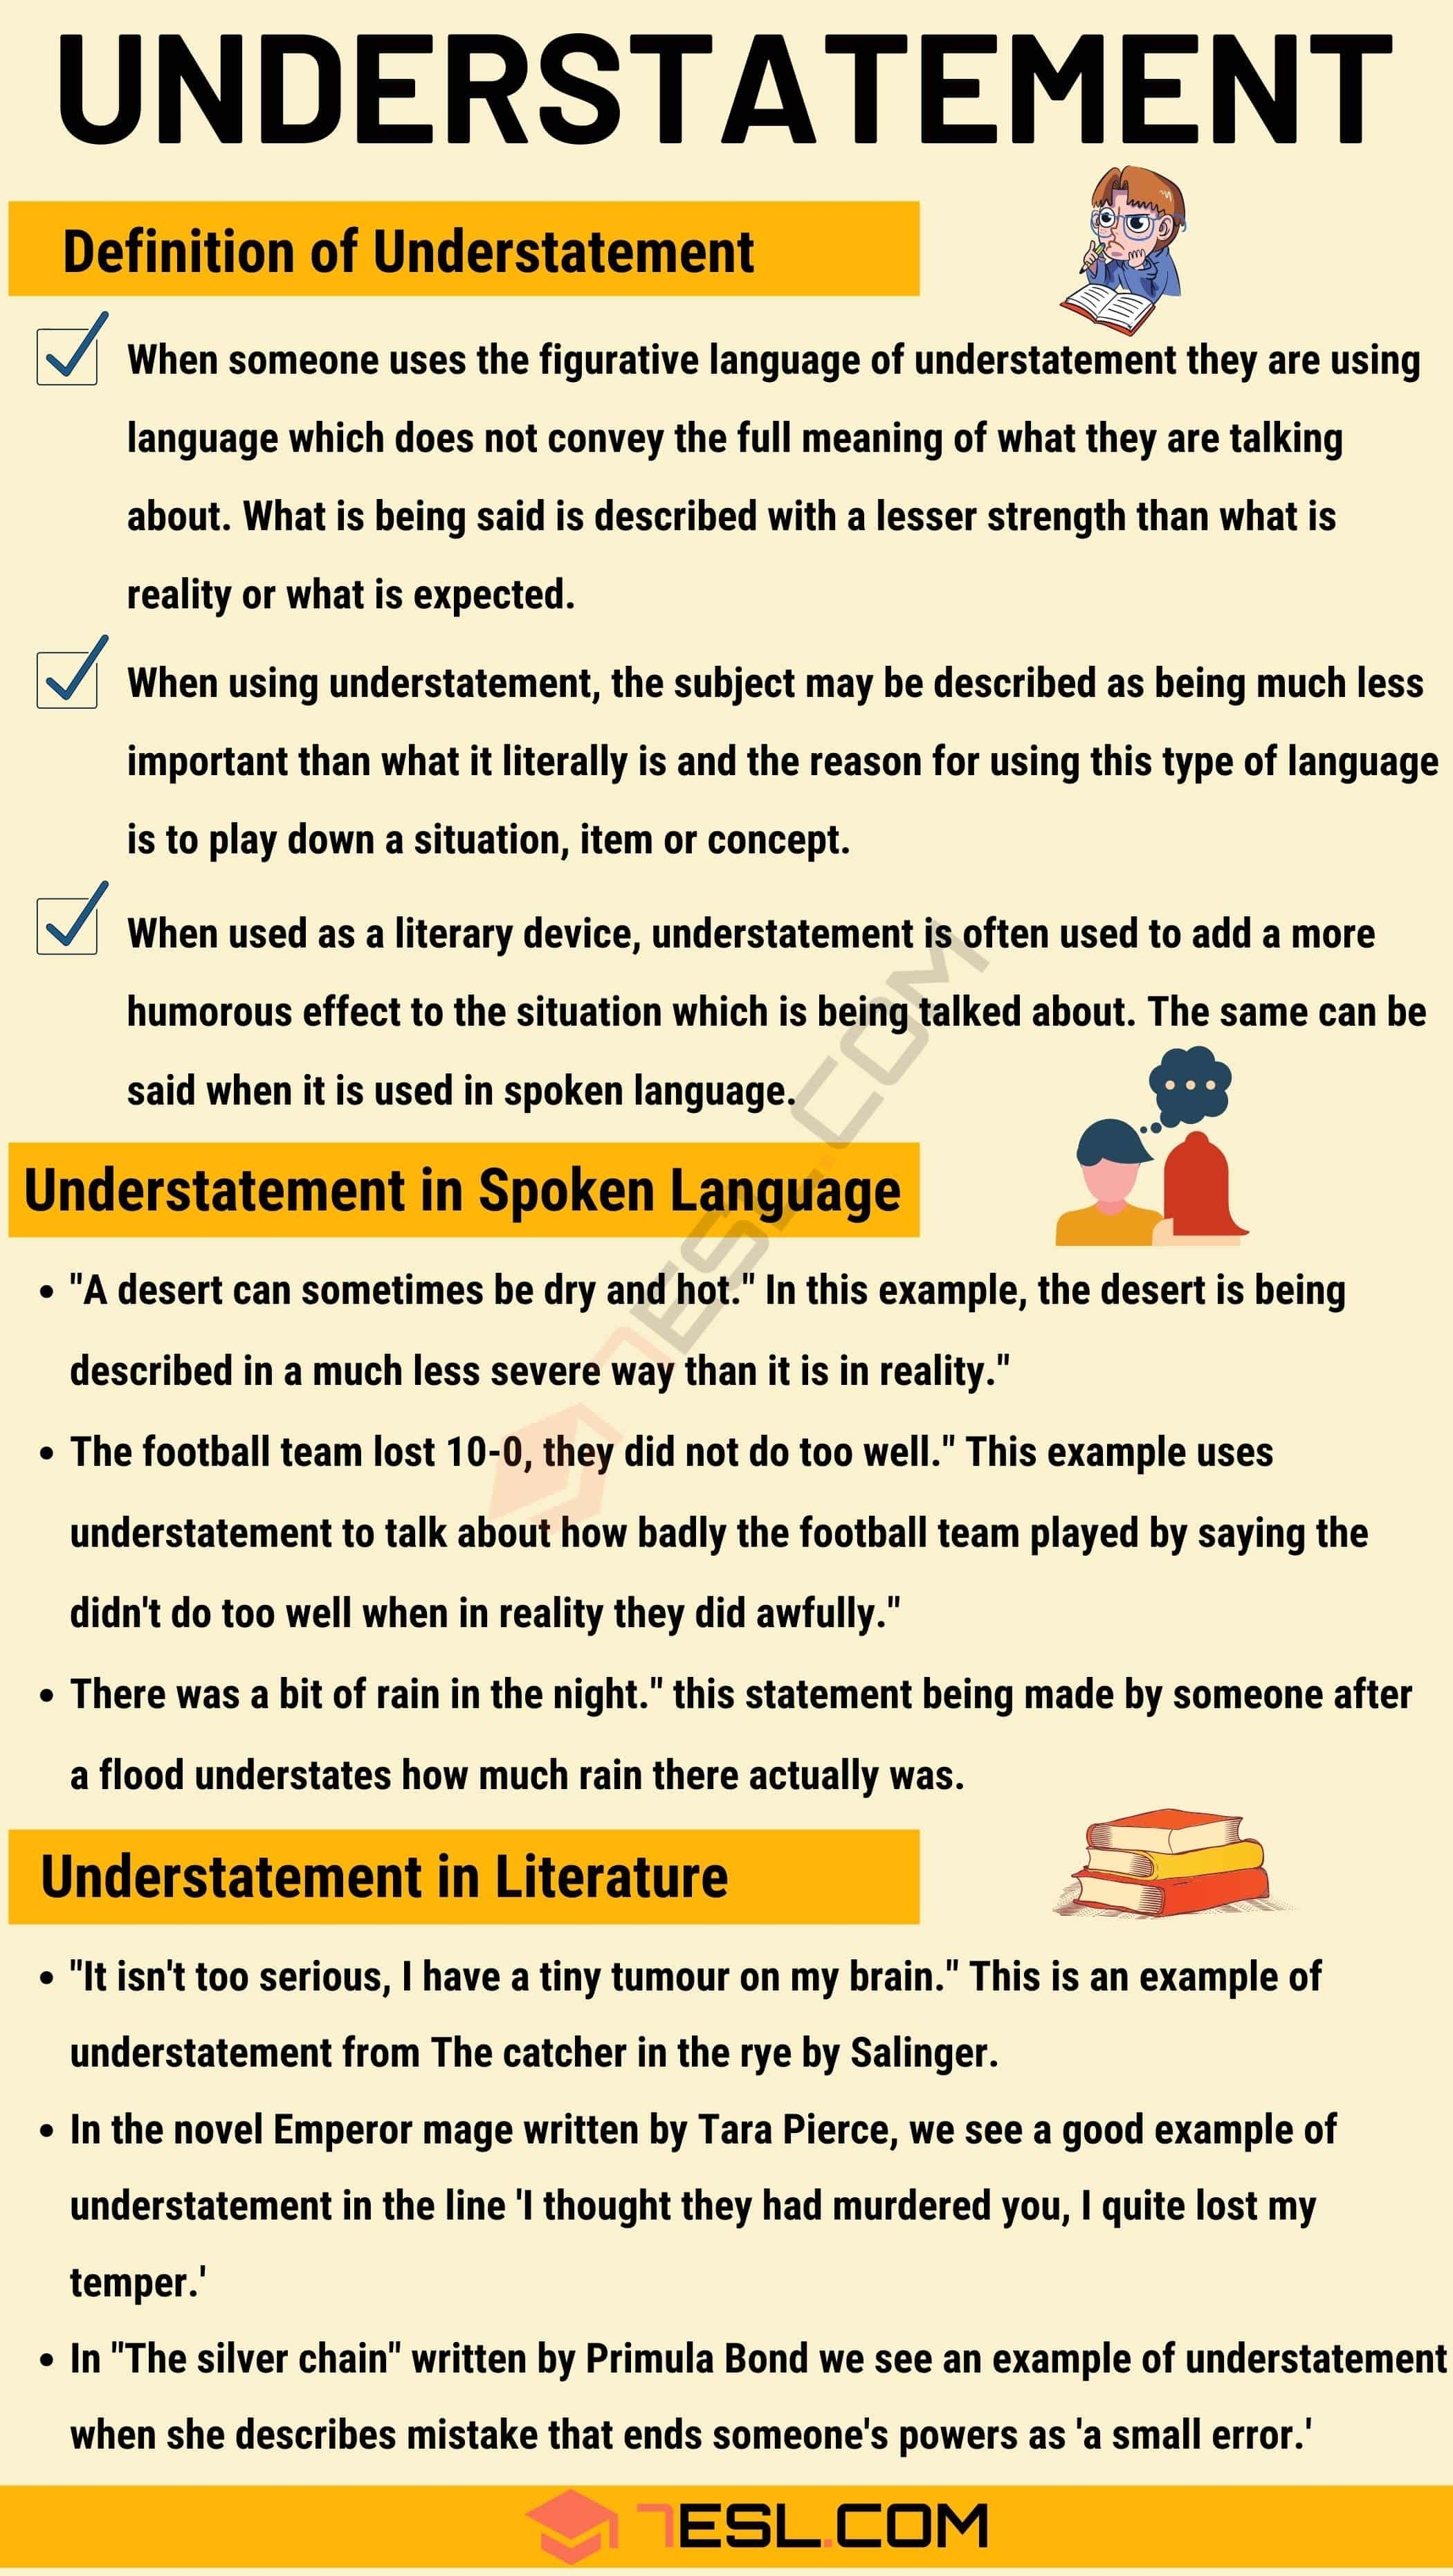 Understatement: Definition and Useful Examples in Spoken Language & Literature